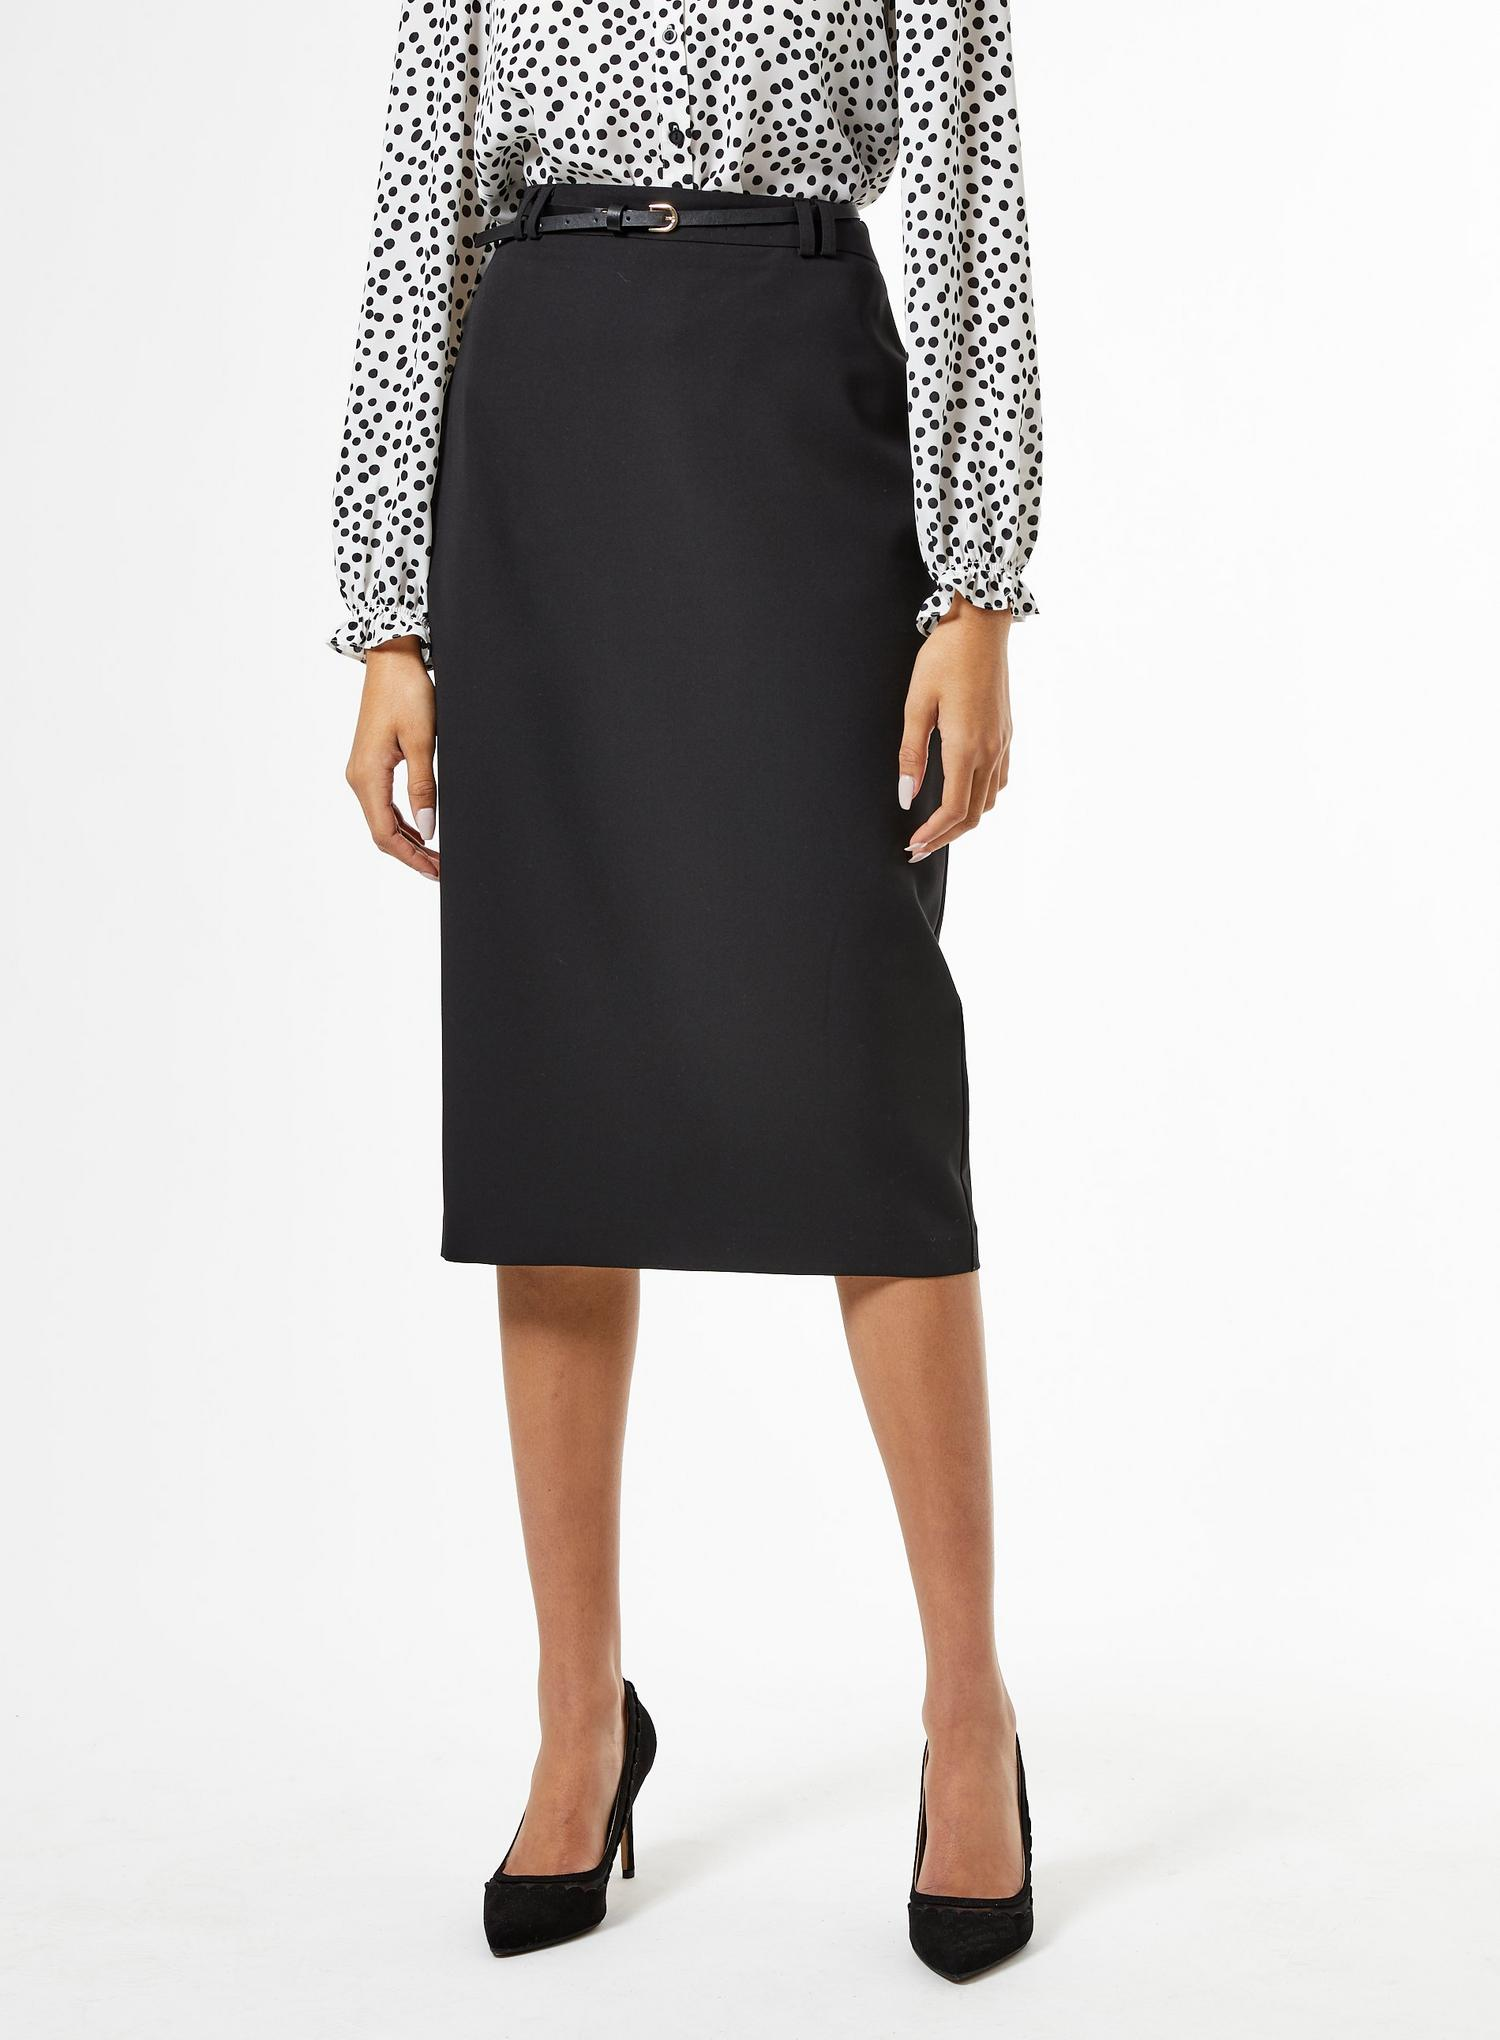 105 Black Tailored Pencil Skirt image number 4